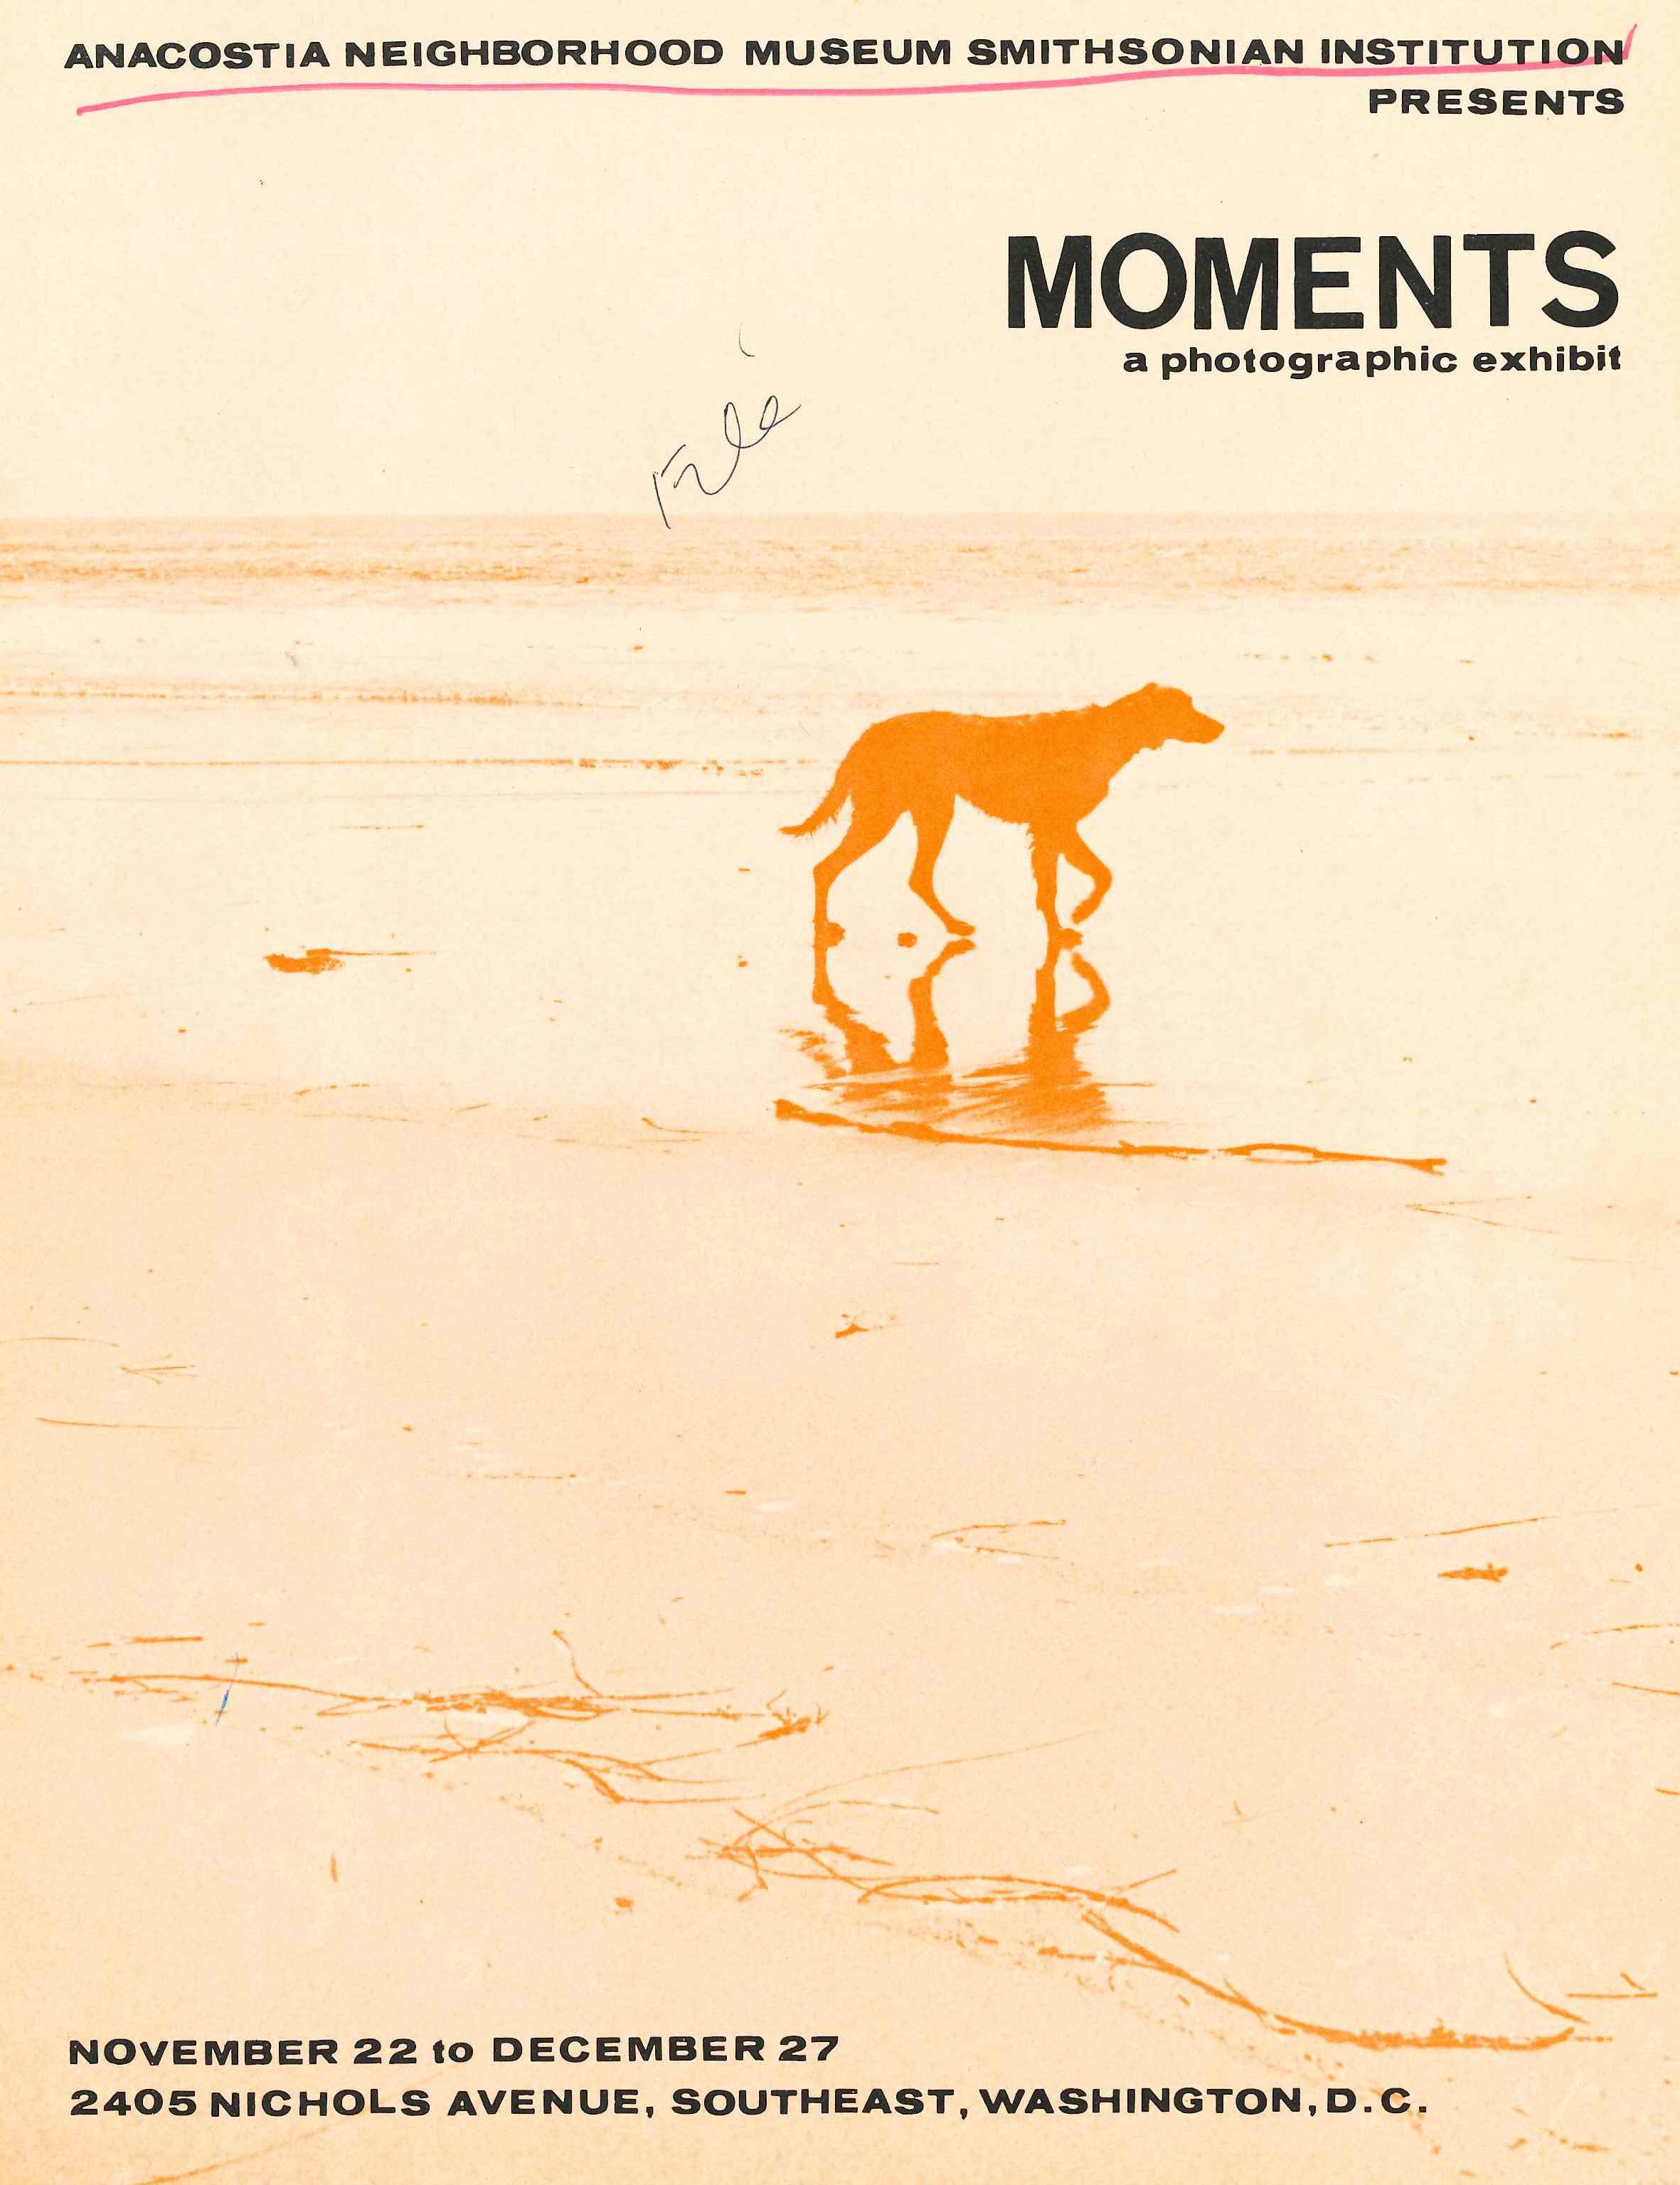 Exhibition brochure - Moments: A Photographic Exhibit, November 22 to December 27, 1970.